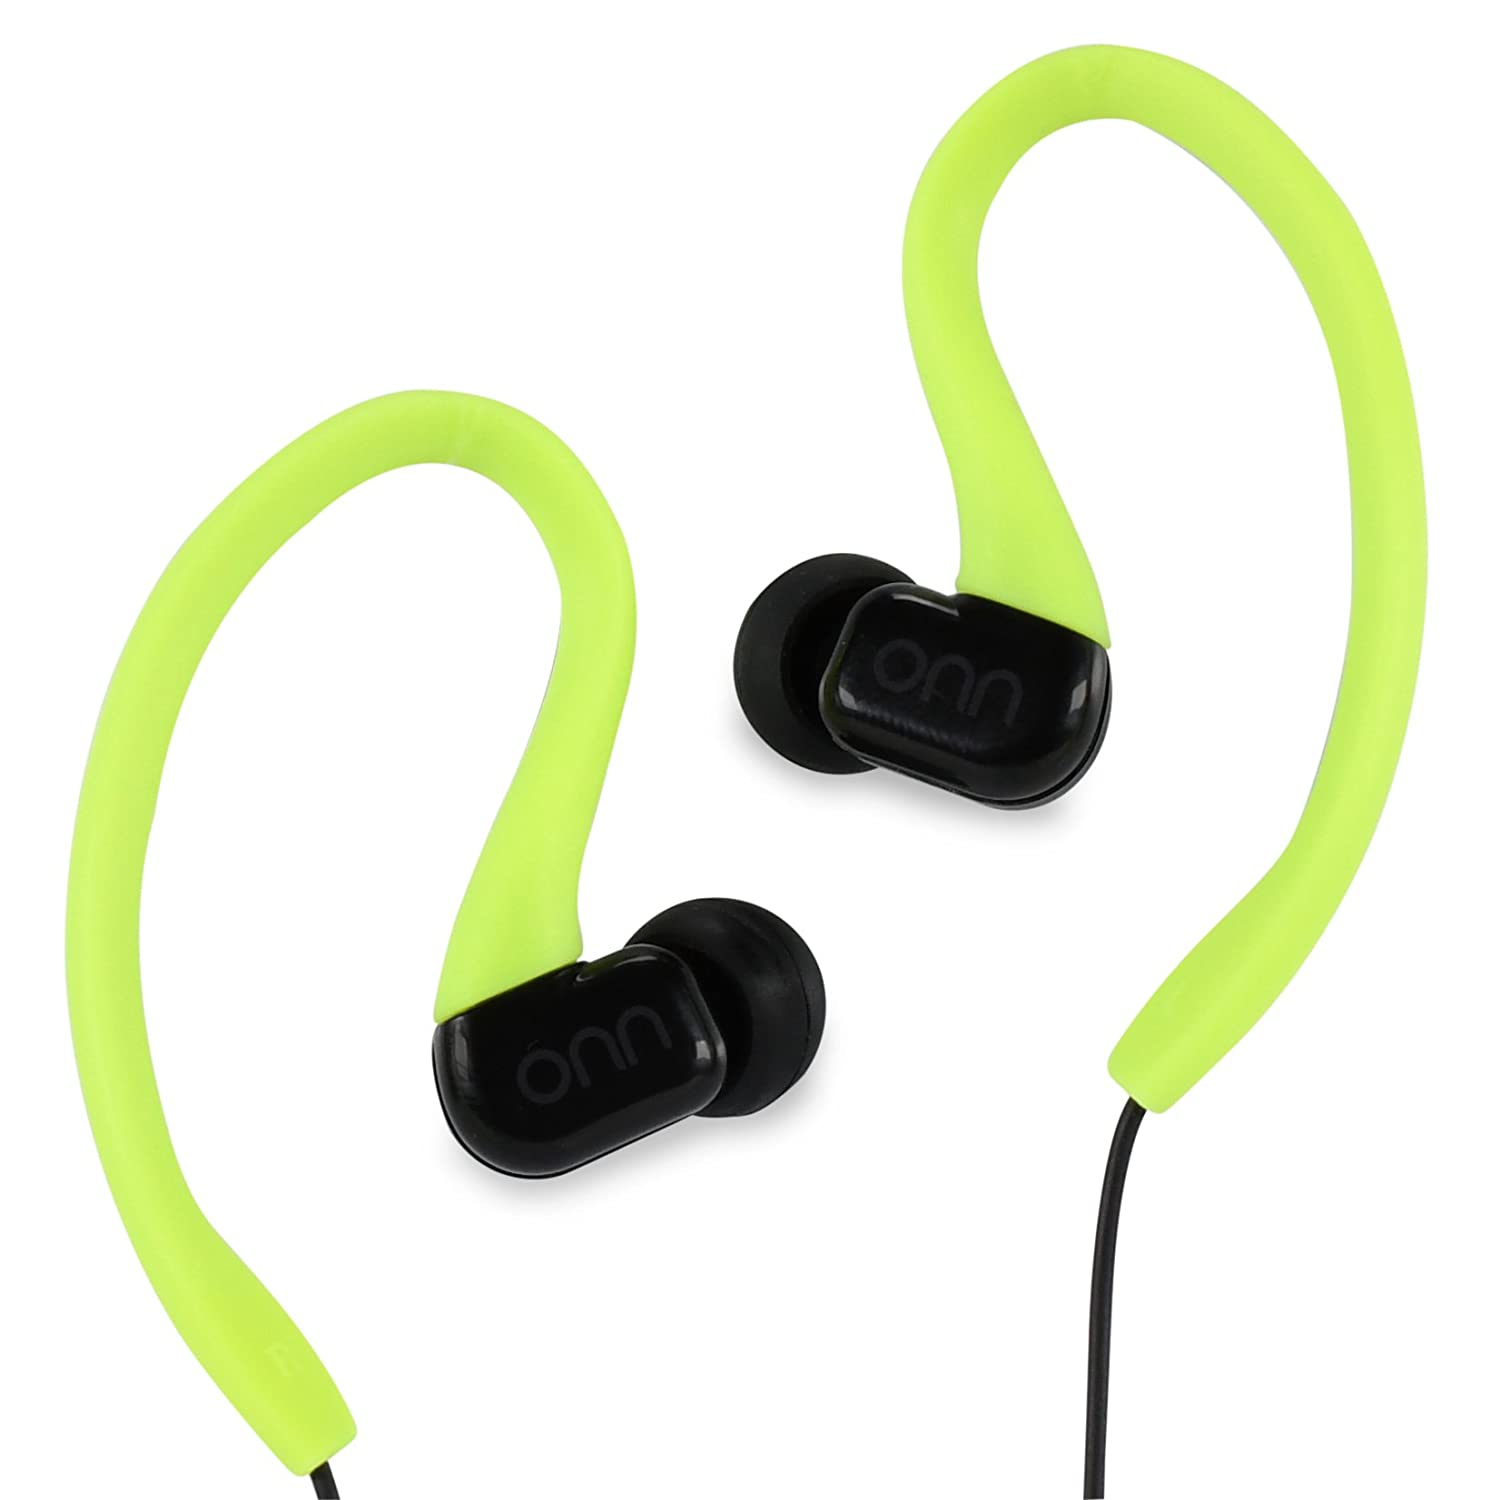 ONN Outdoor Activity Style Sports Soft Loop Hanger Vertical In-Ear Clips Earbud Headphones Earbuds with In-Line One-Touch Microphone, Neon Yellow Black Non-Retail Packaging